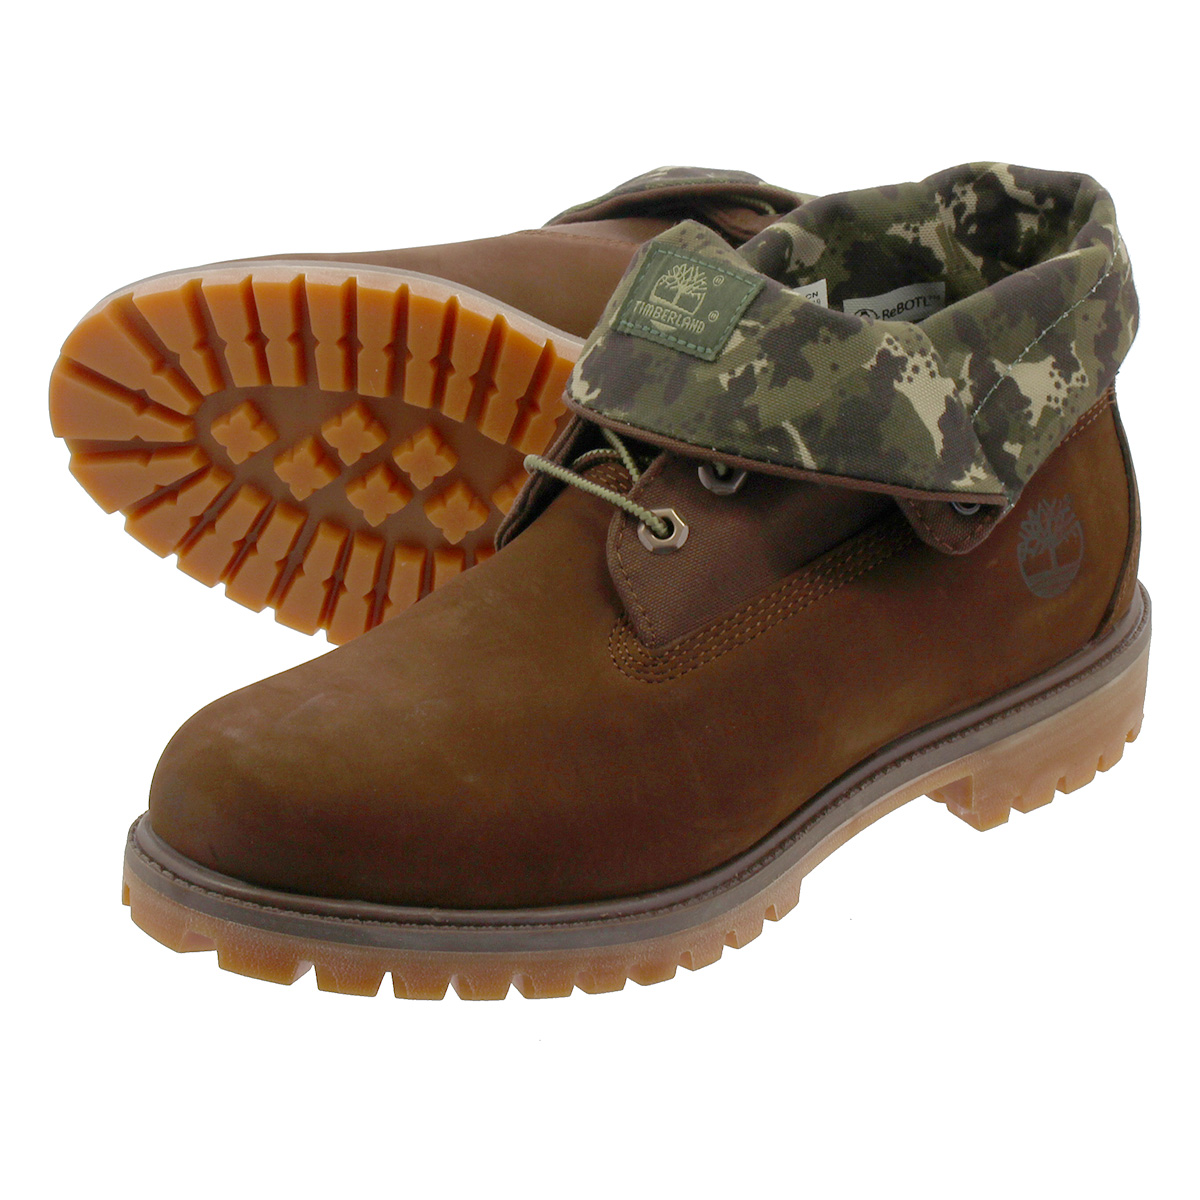 TIMBERLAND ROLL TOP BOOT ティンバーランド ロール トップ ブーツ POTTING SOIL/GREEN CAMO a21ap